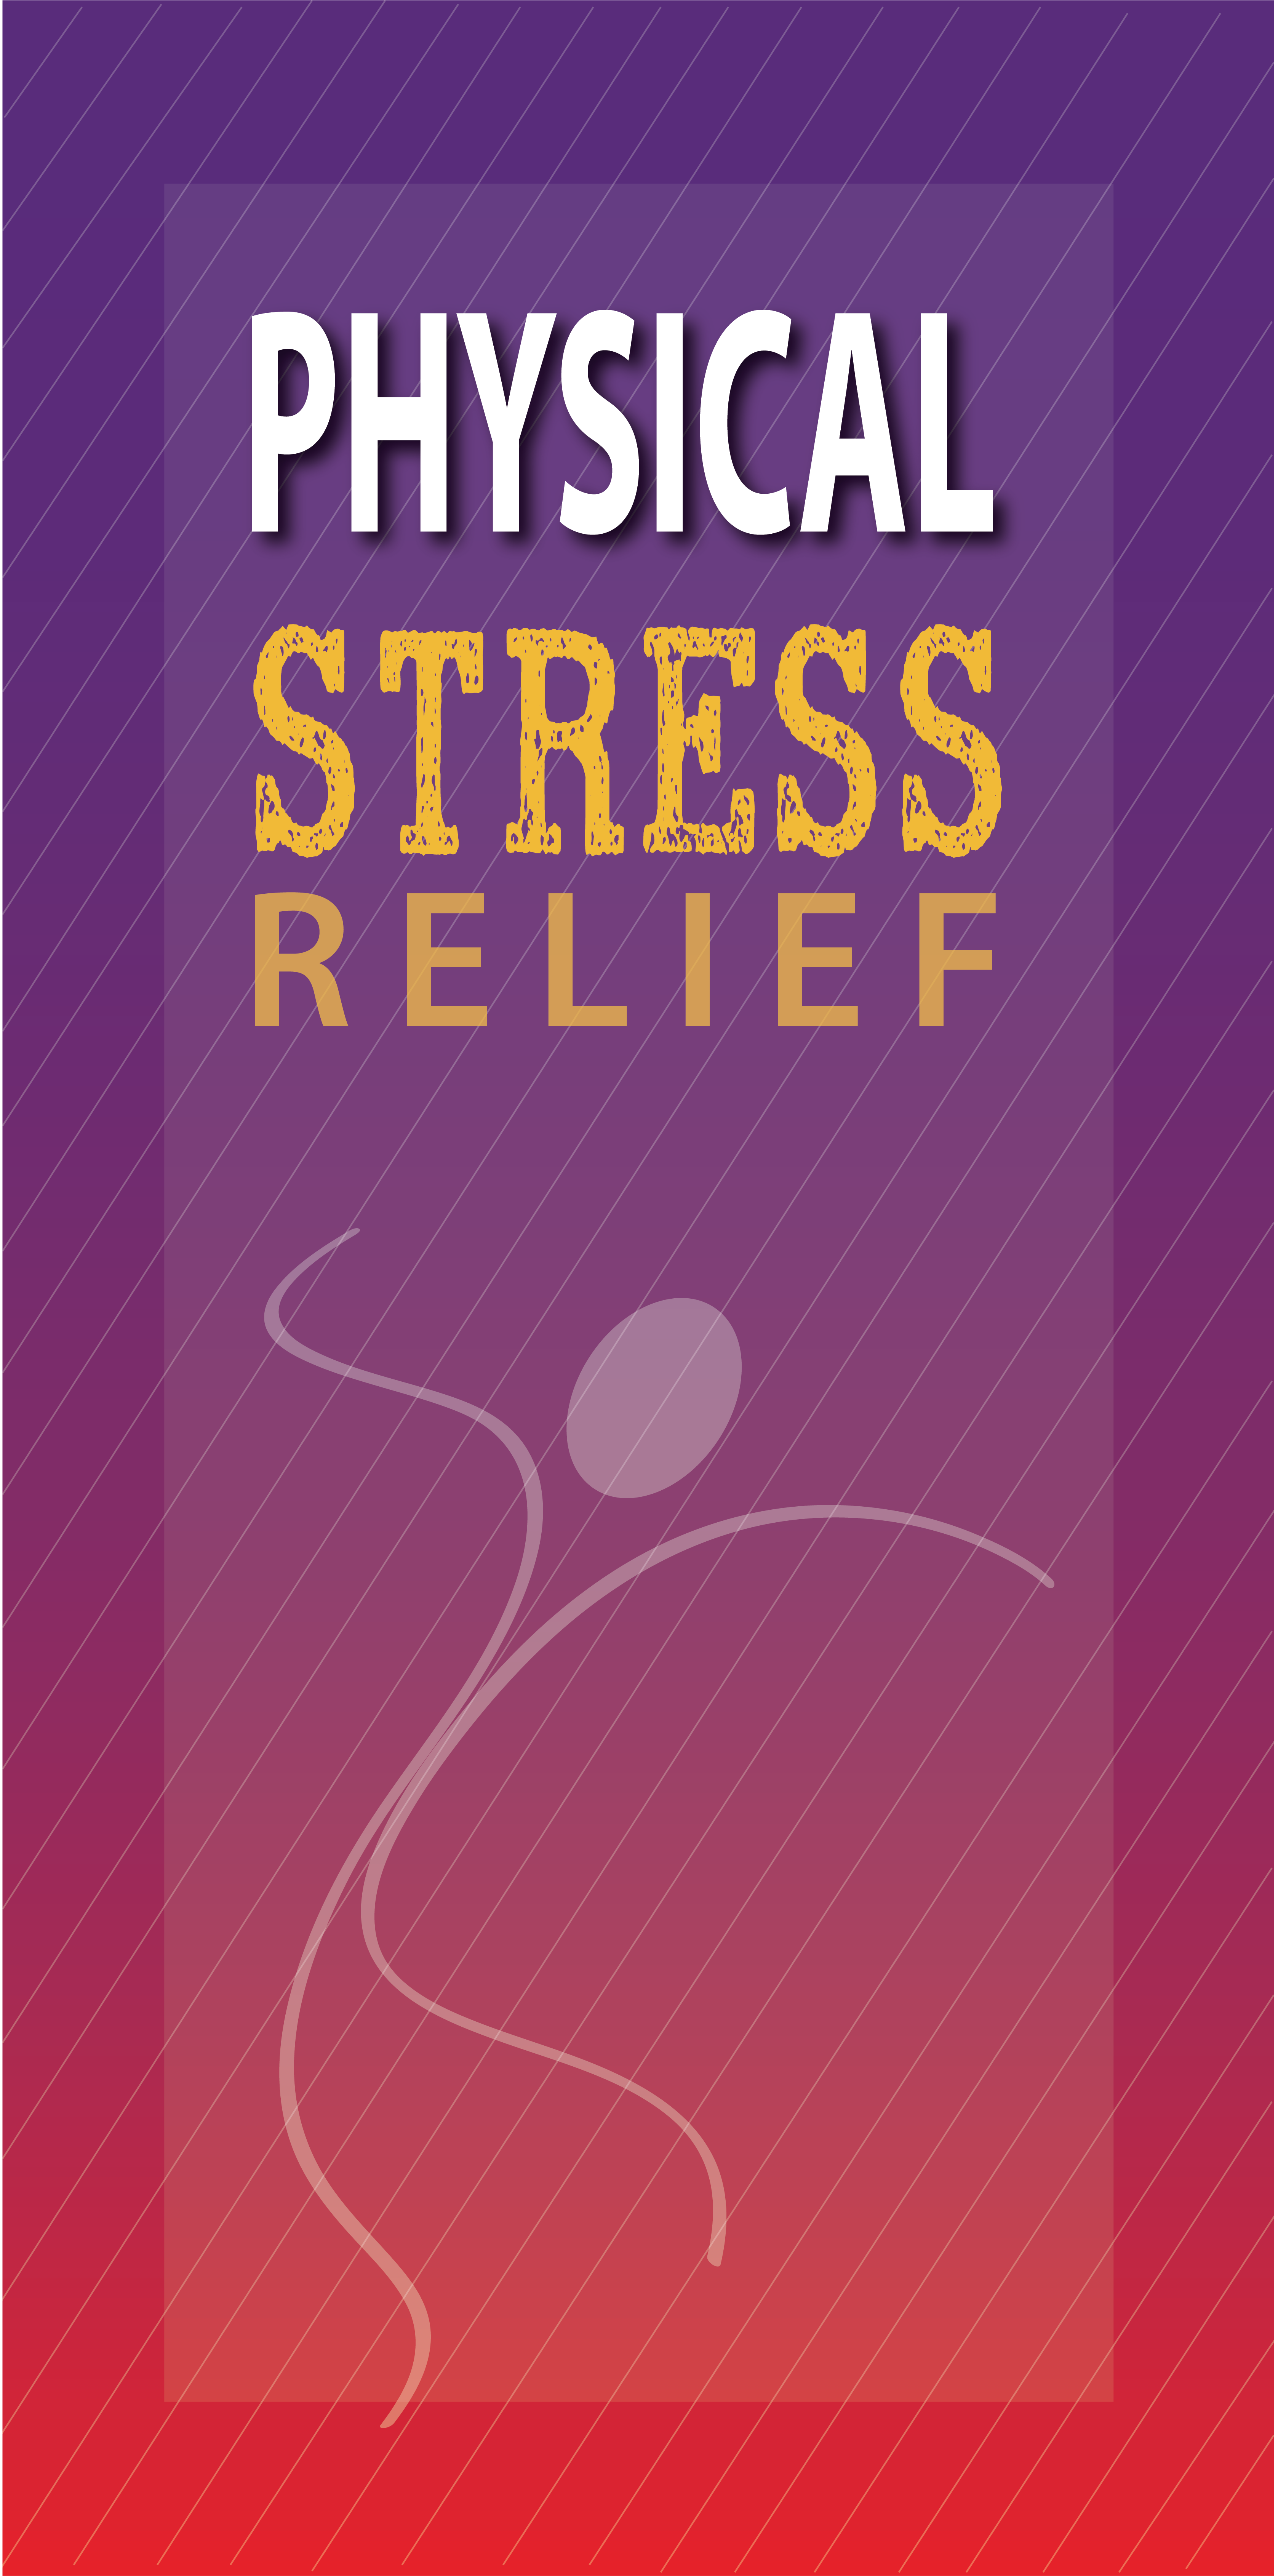 Looking For Physical Stress Relief This Board Has Tips On